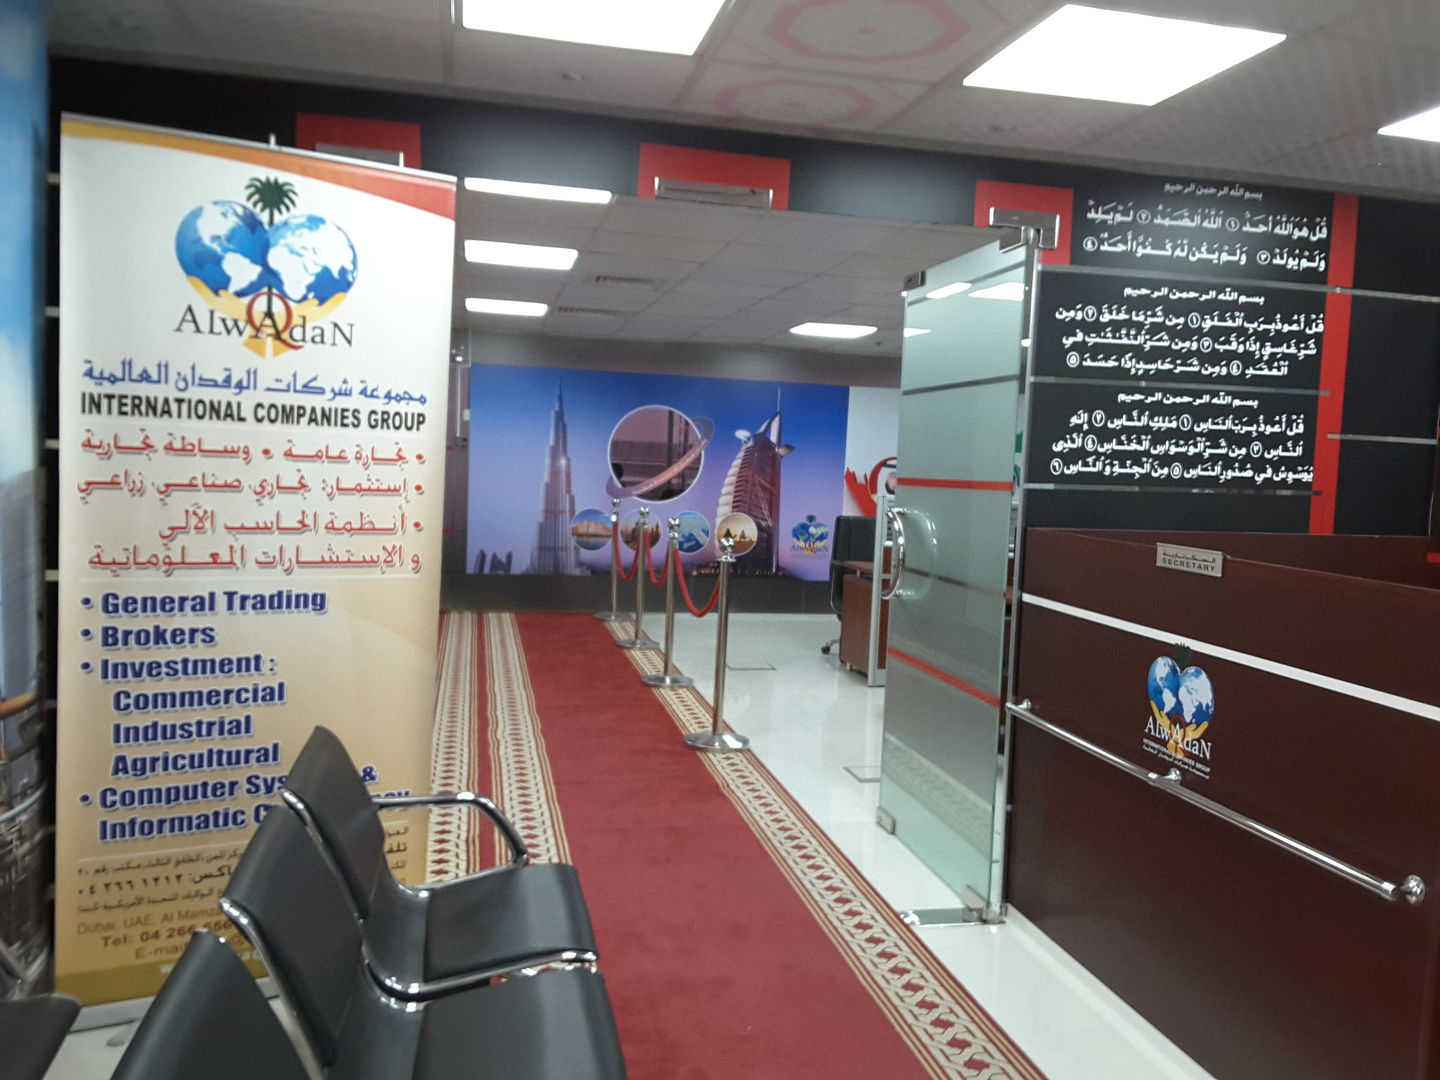 HiDubai-business-al-waqdan-international-general-trading-b2b-services-distributors-wholesalers-hor-al-anz-east-dubai-2